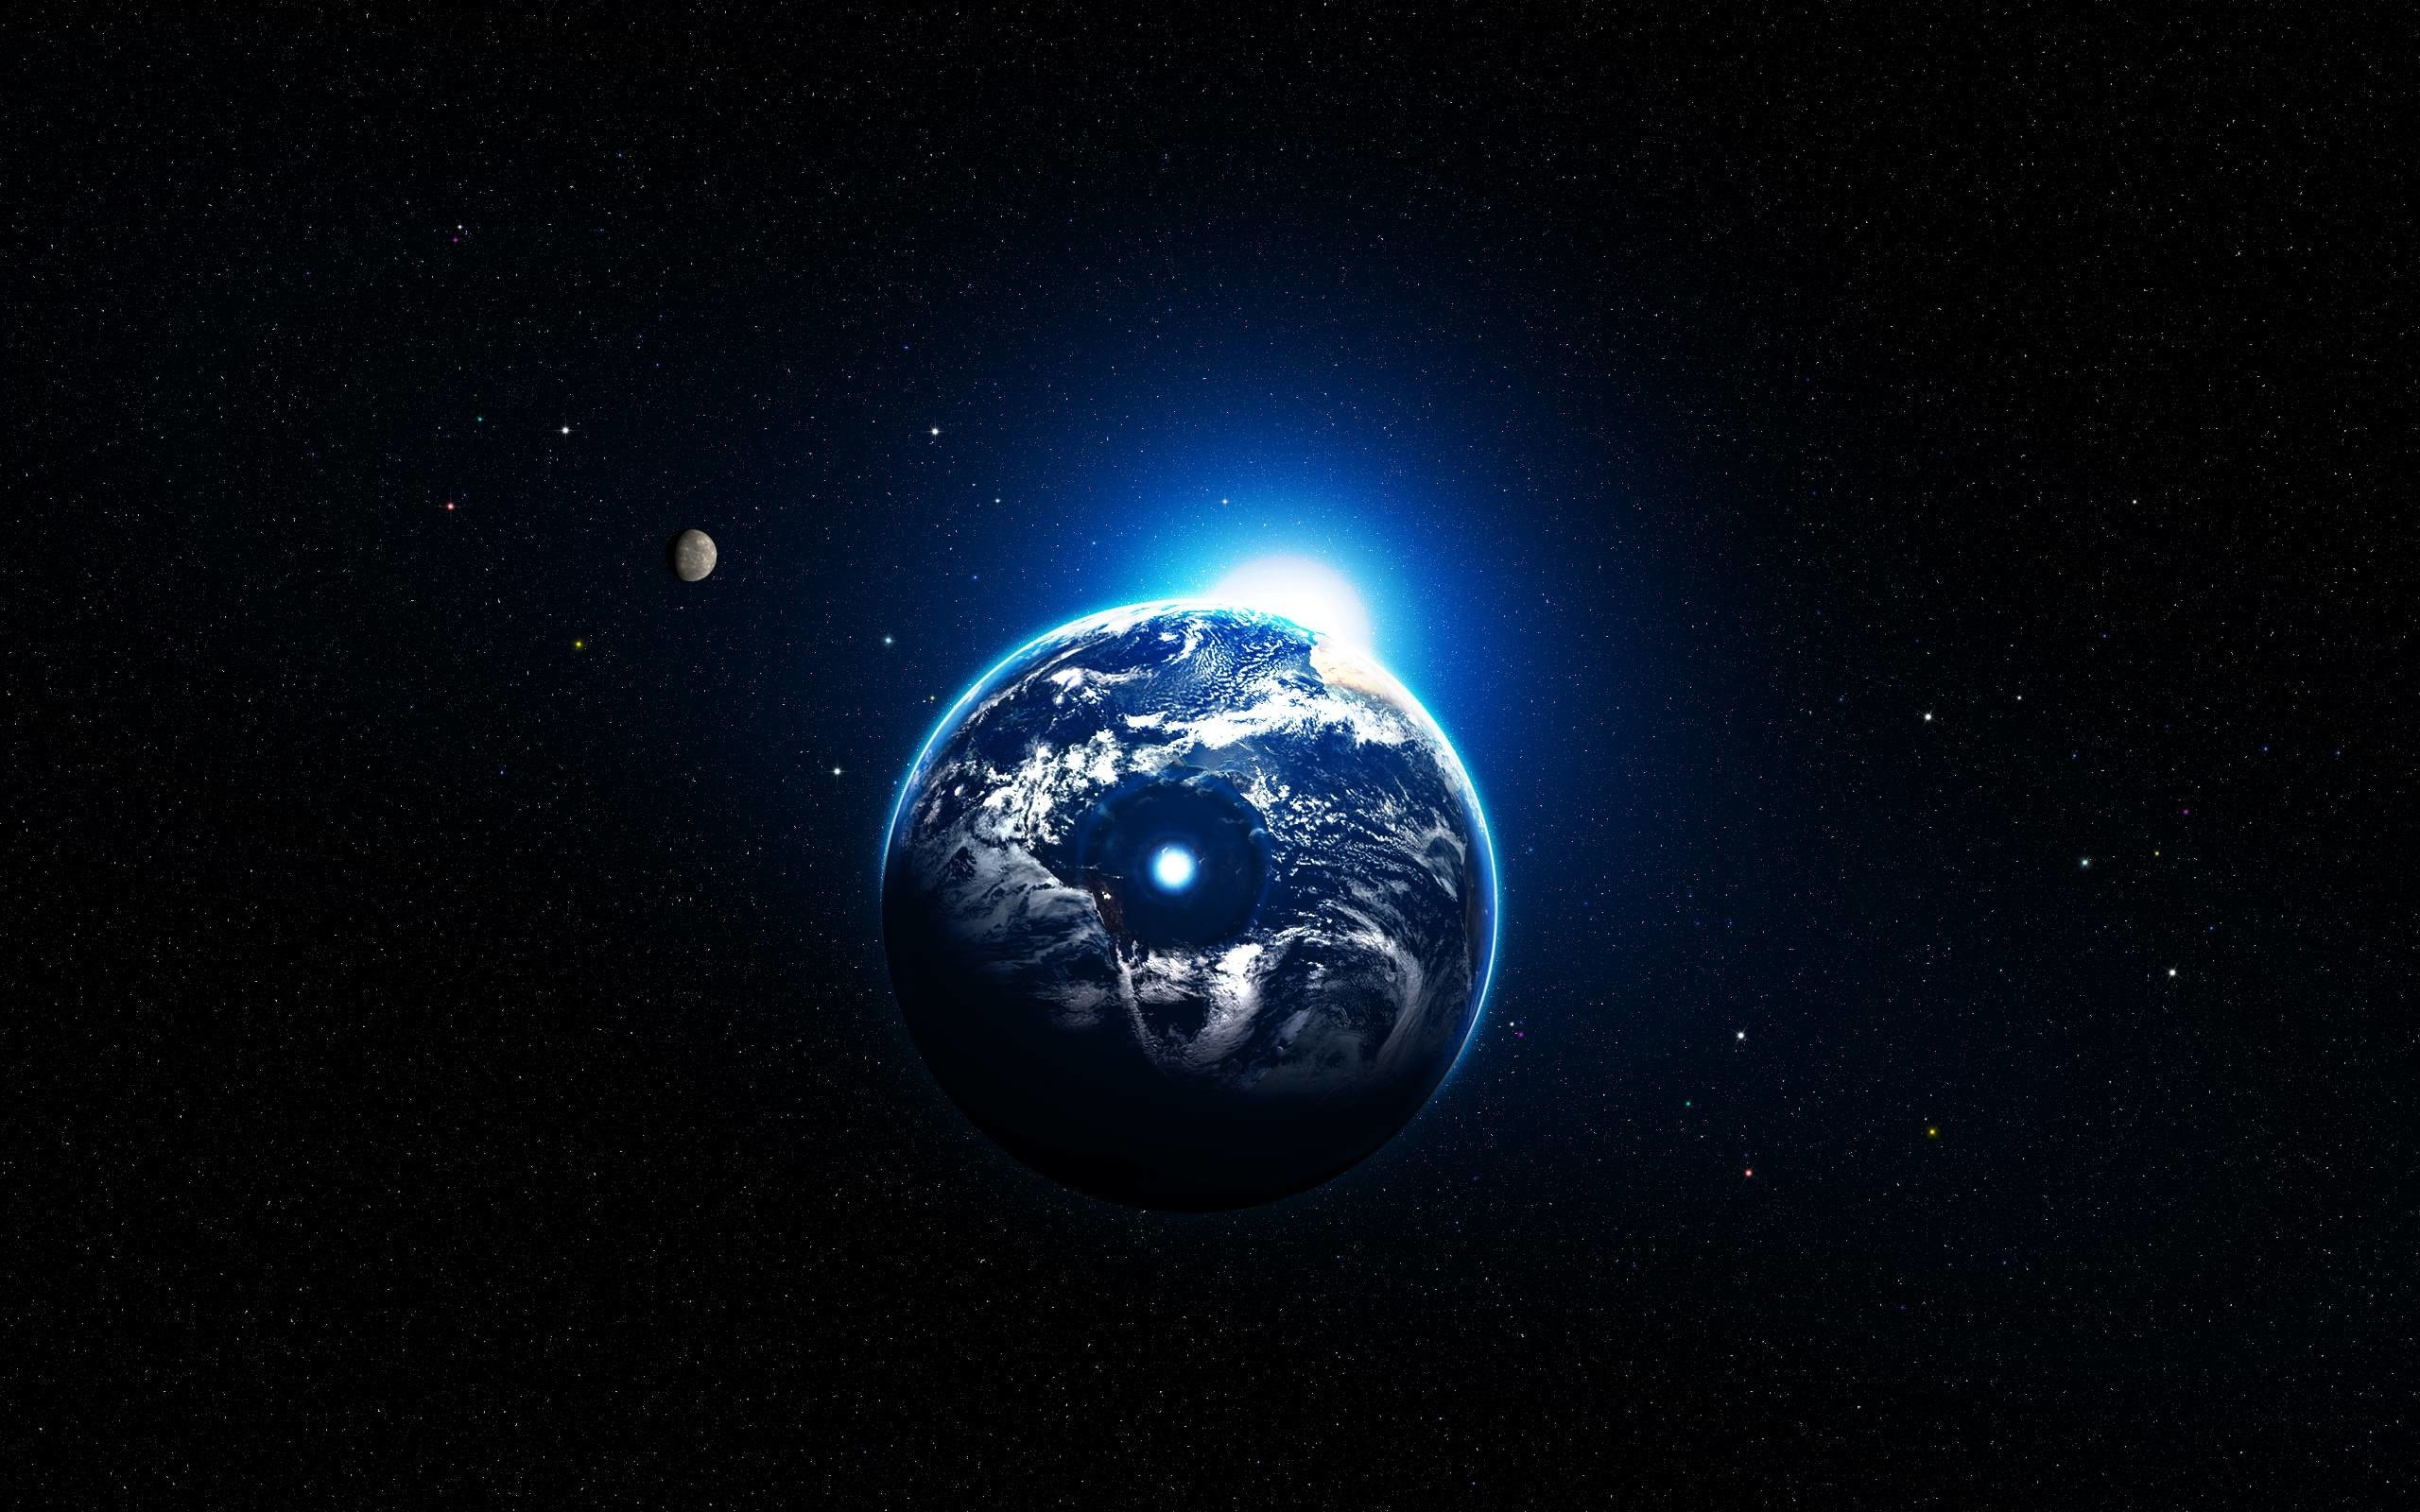 Cool Earth Wallpaper - KoLPaPer - Awesome Free HD Wallpapers